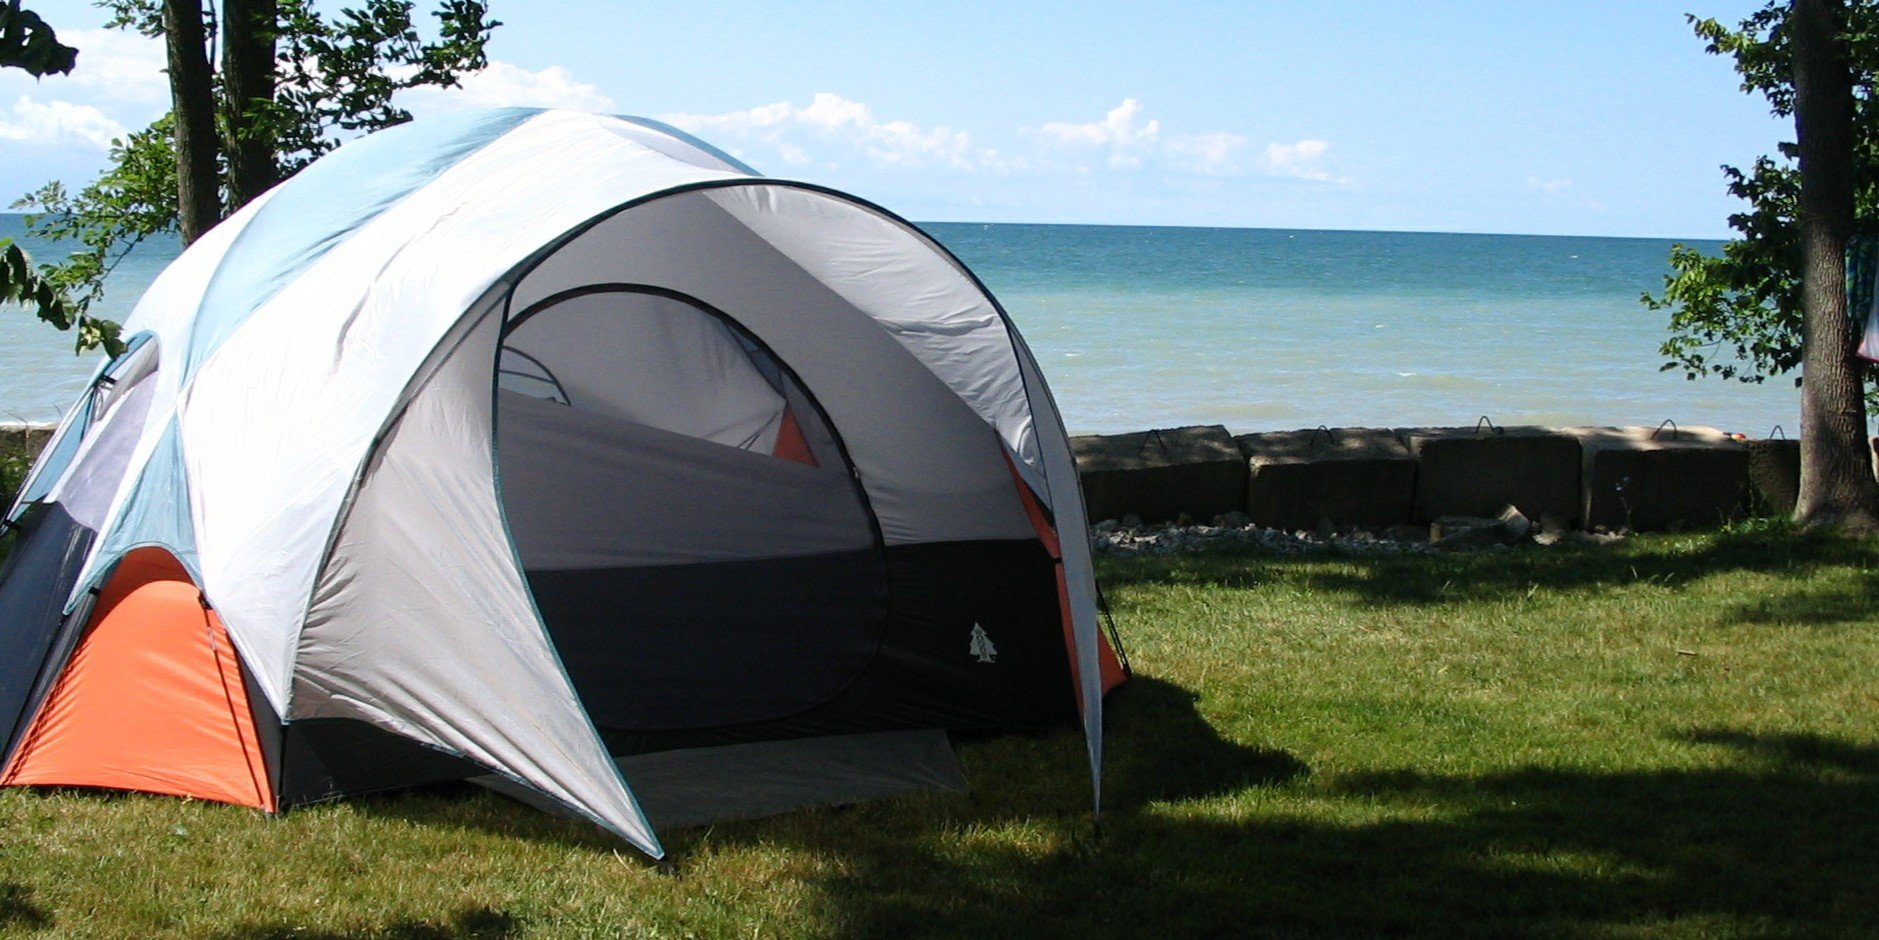 How to insulate a tent for AC: 3 ways to efficiently air condition your tent while camping